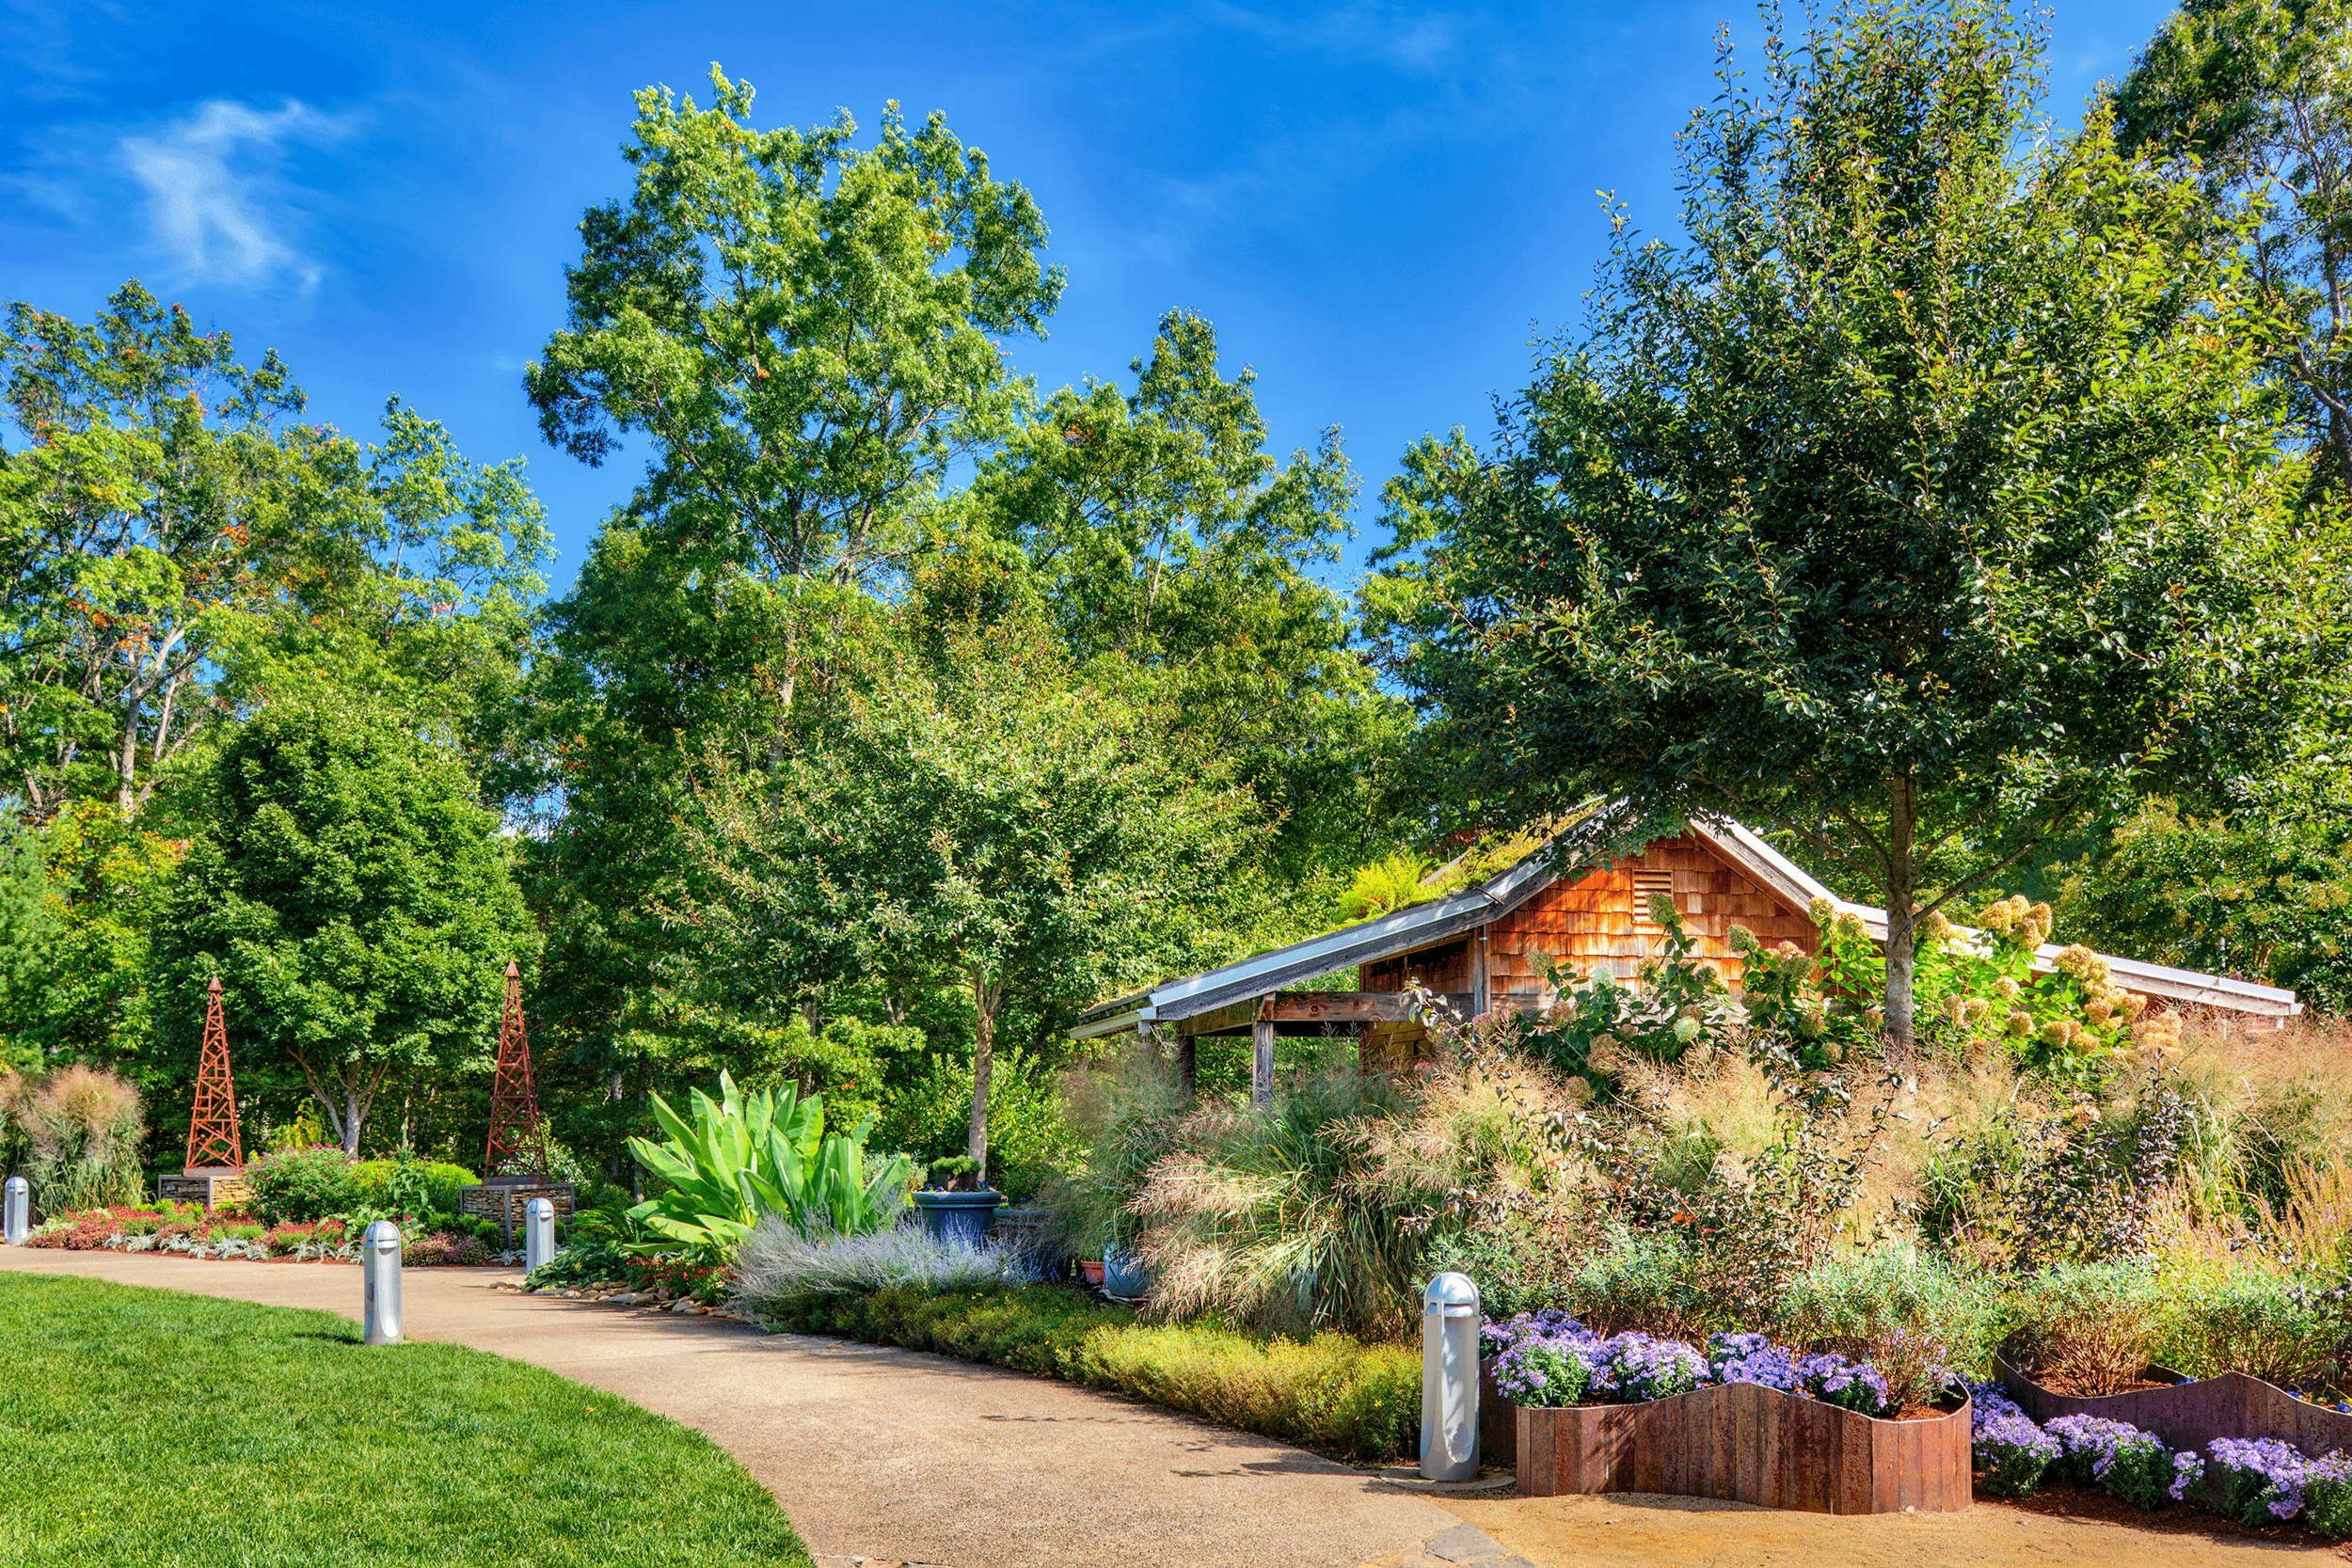 The  North Carolina Arboretum  is open year-round and offers picturesque vistas while you stroll through the neatly arranged gardens or relax on one of the many benches, enjoying the serenity of nature.